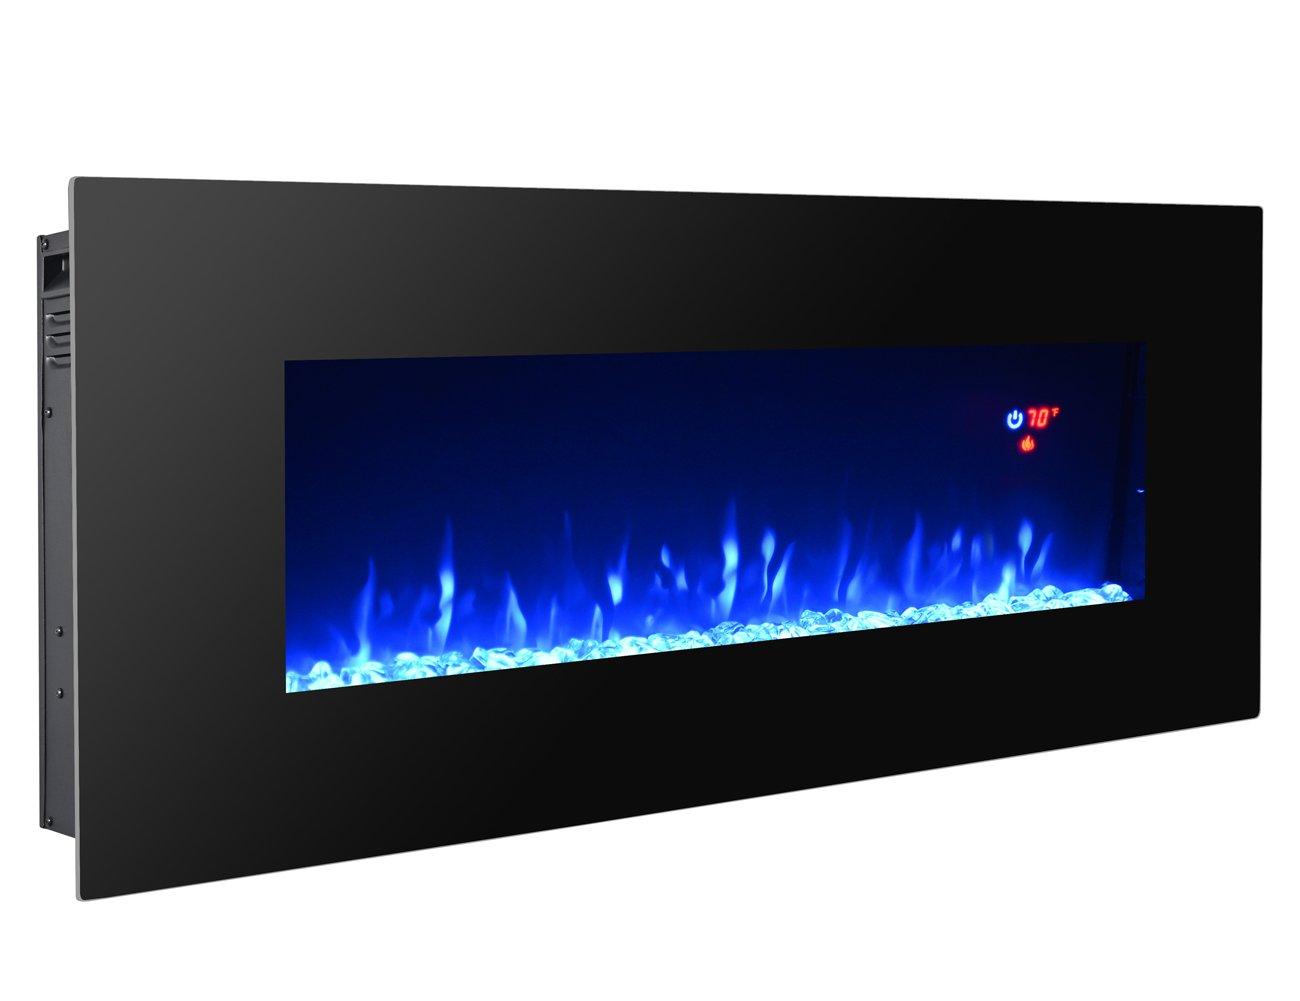 3G Plus 40'' Electric Fireplace Wall Mounted Heater Crystal Stone Fuel Effect 3 Changeable Flame Color w/Remote- Black